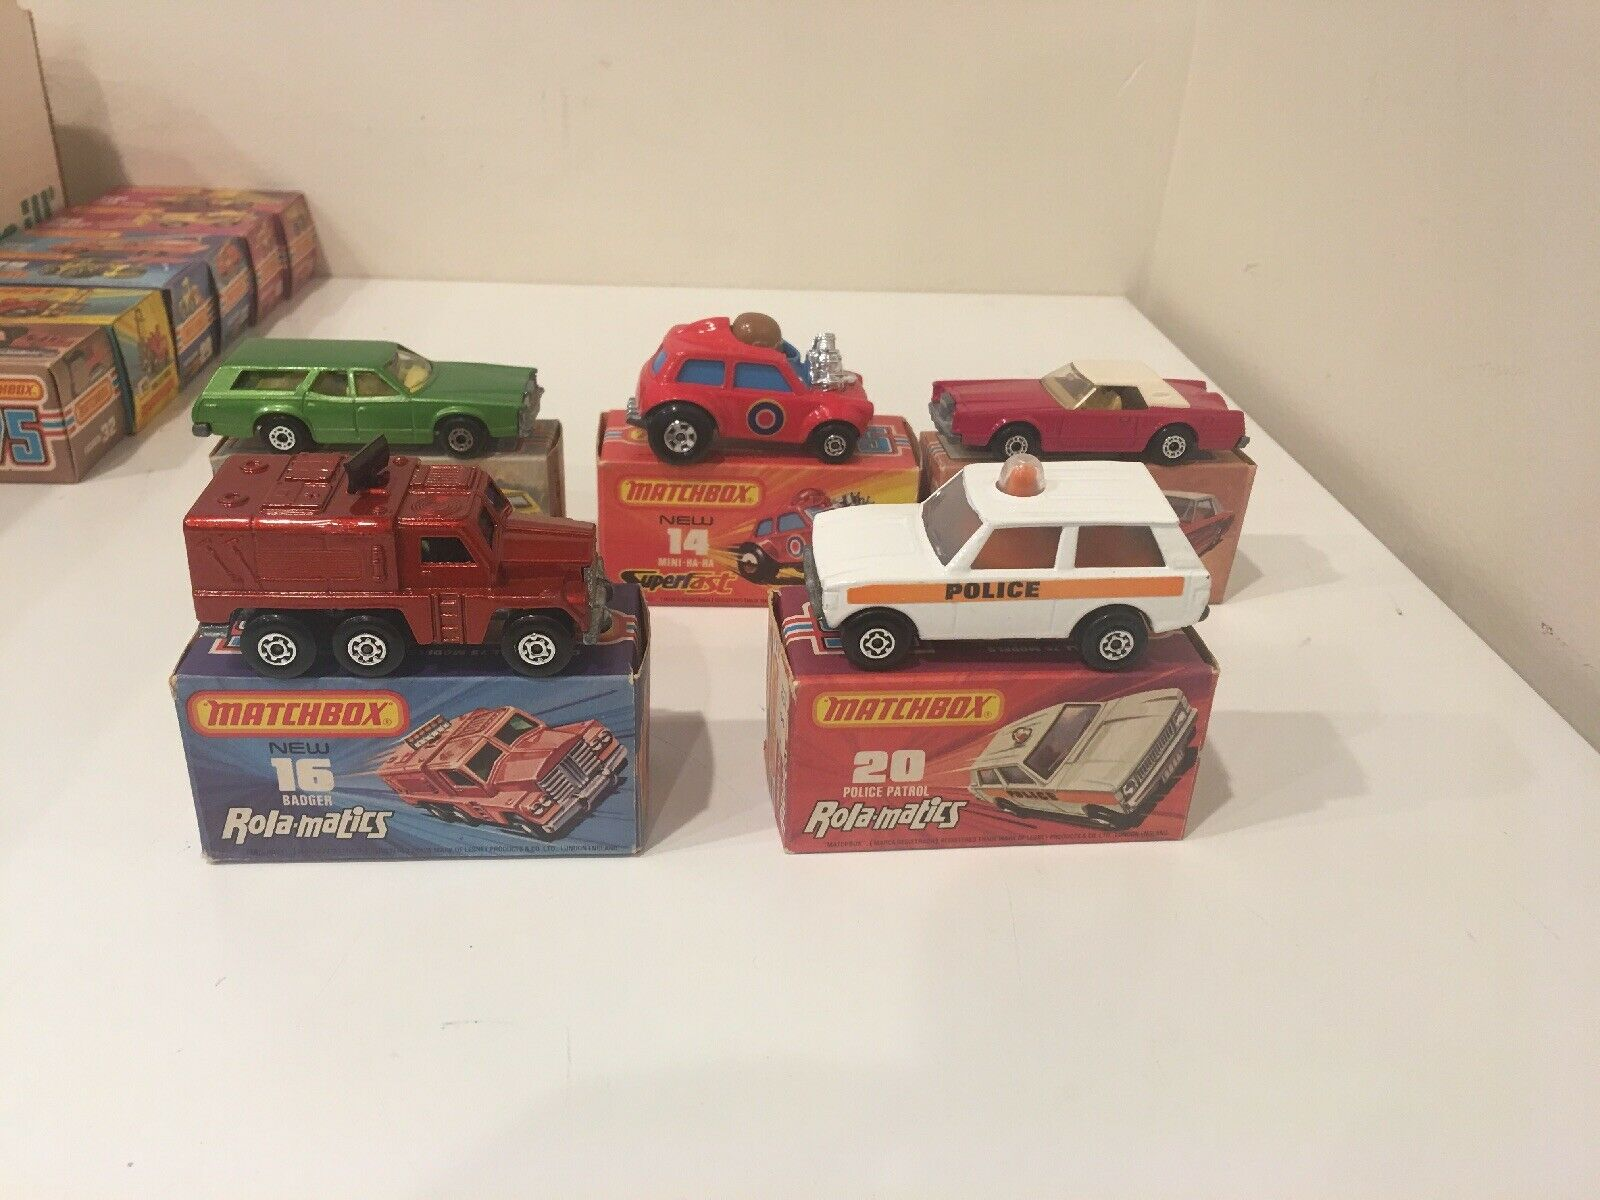 5 MATCHBOX LESNEY 14,16,20,74,28 MINI HA-HA M Badger Cougar Unplayed With